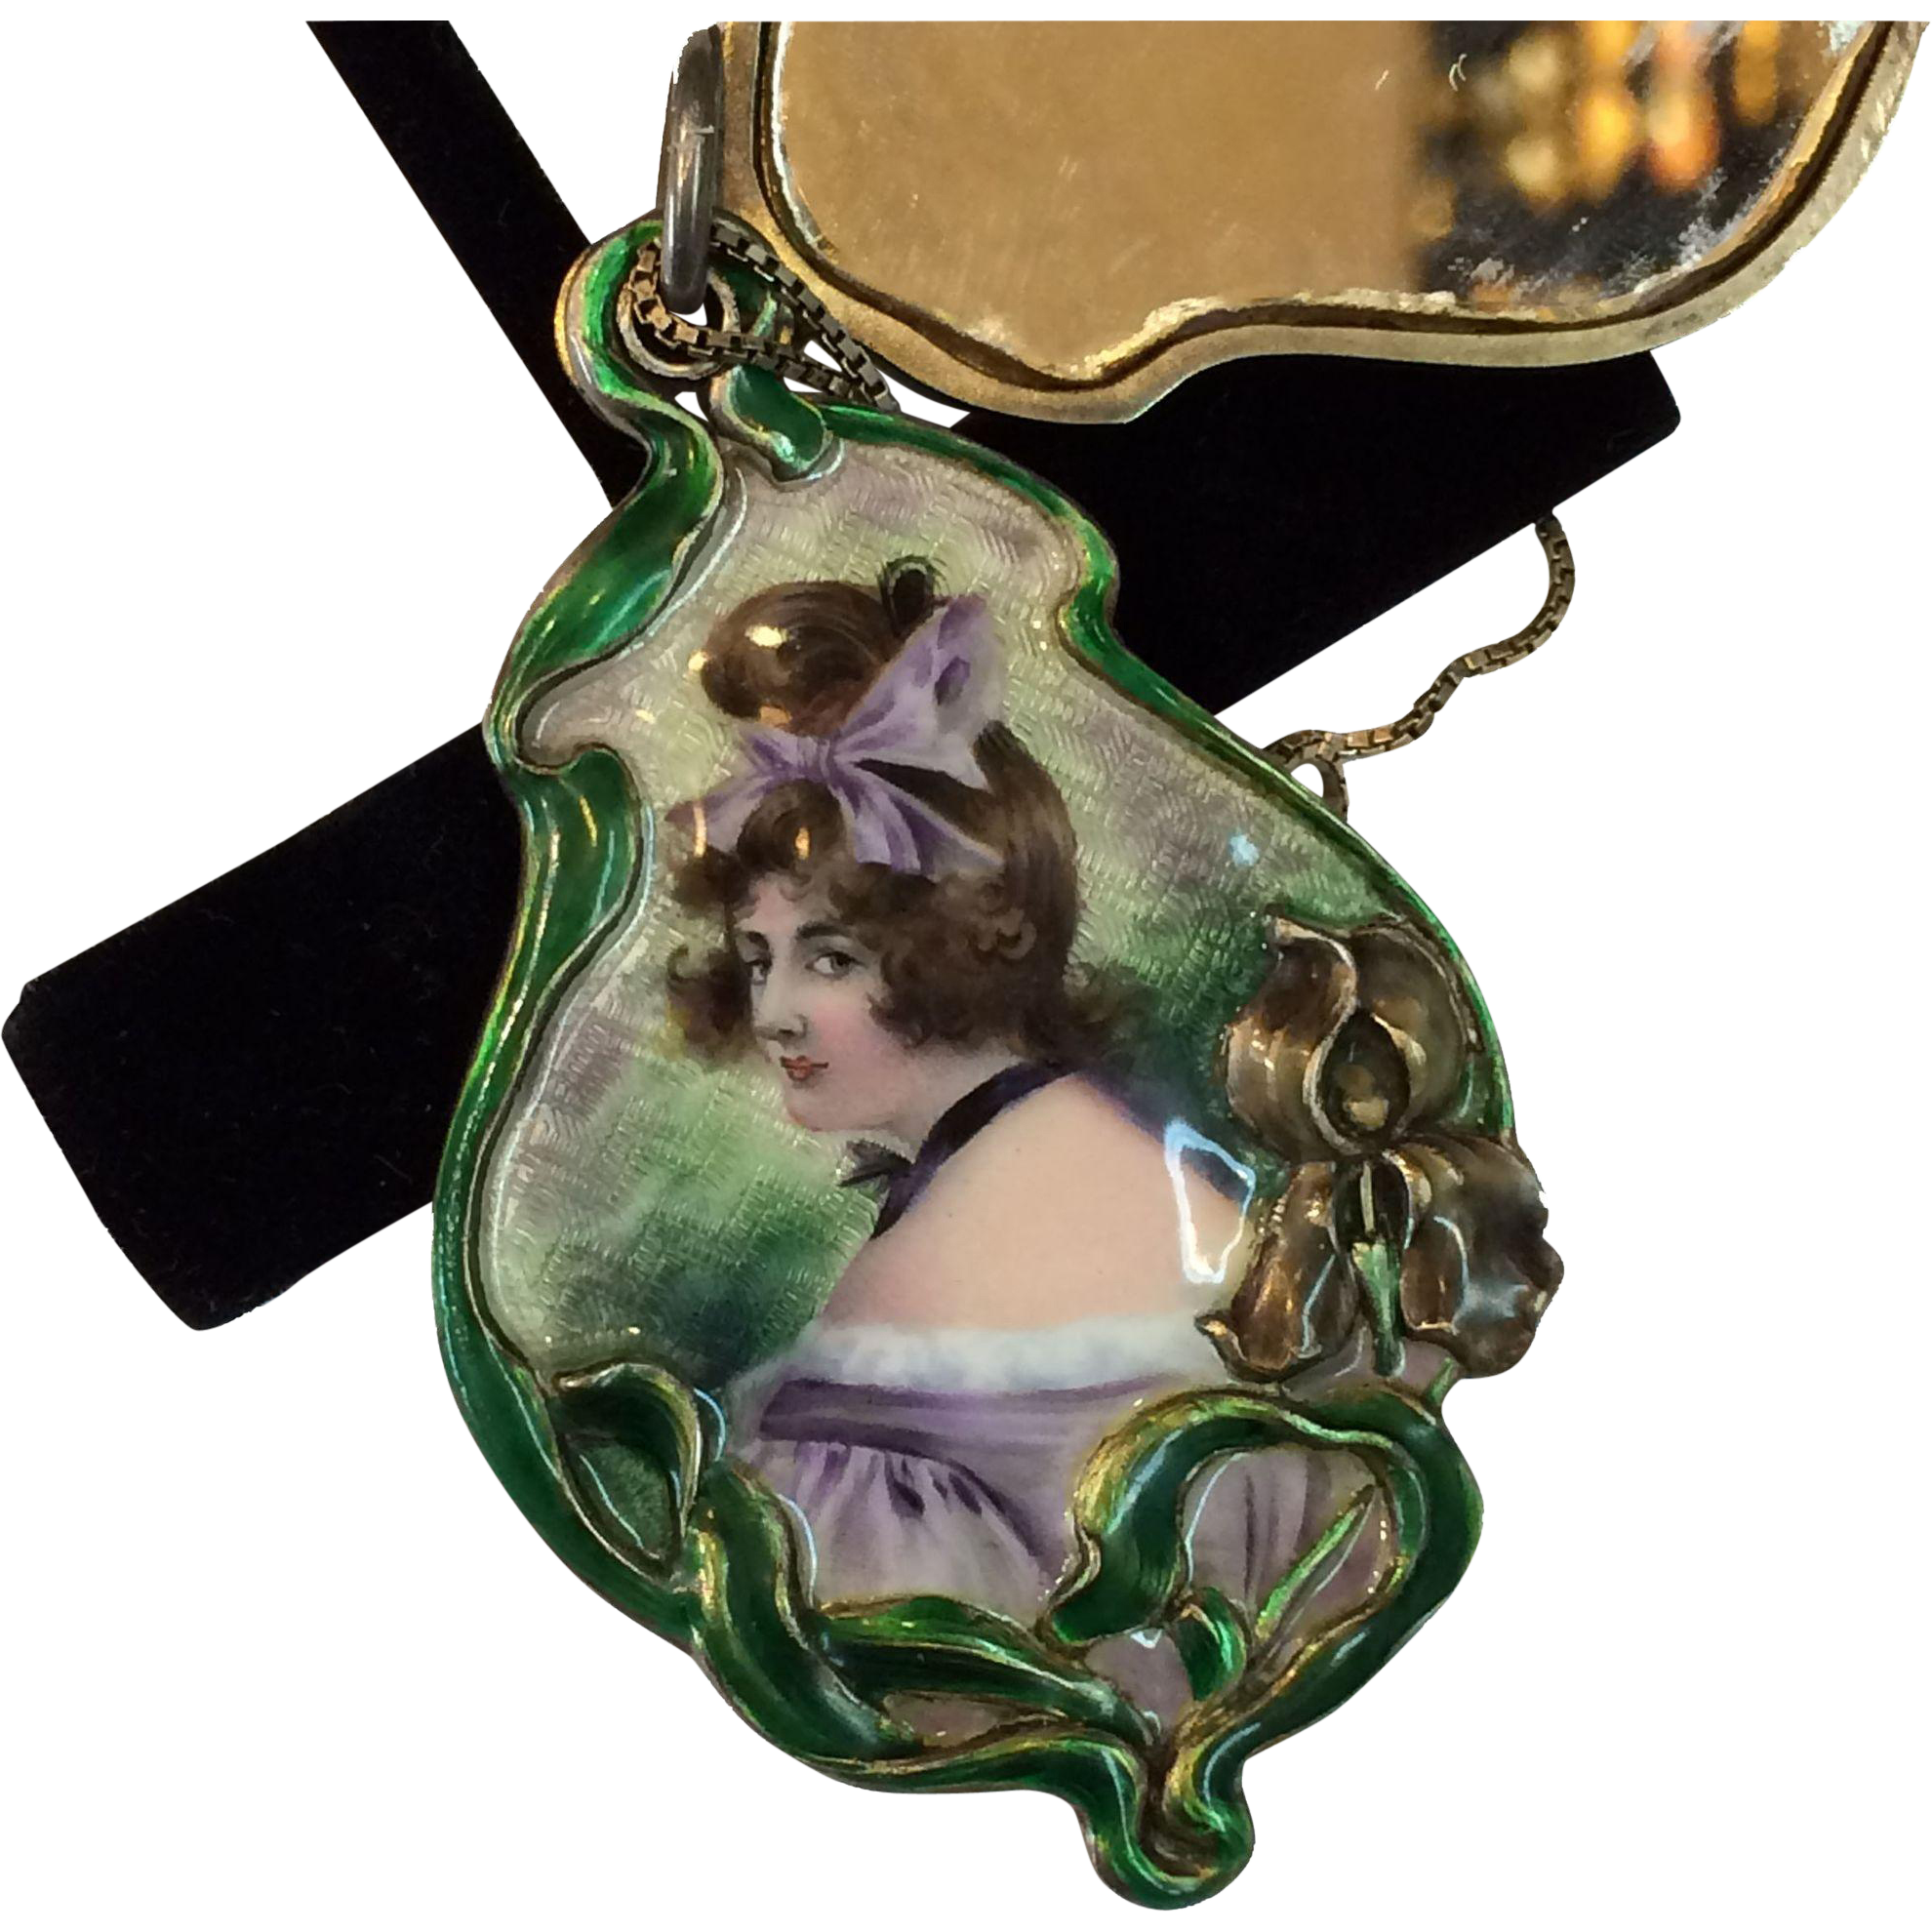 Meyle & Mayer Art Nouveau 900 Silver Depose Hand Painted Beautiful Lady Mirrored Pendant Necklace